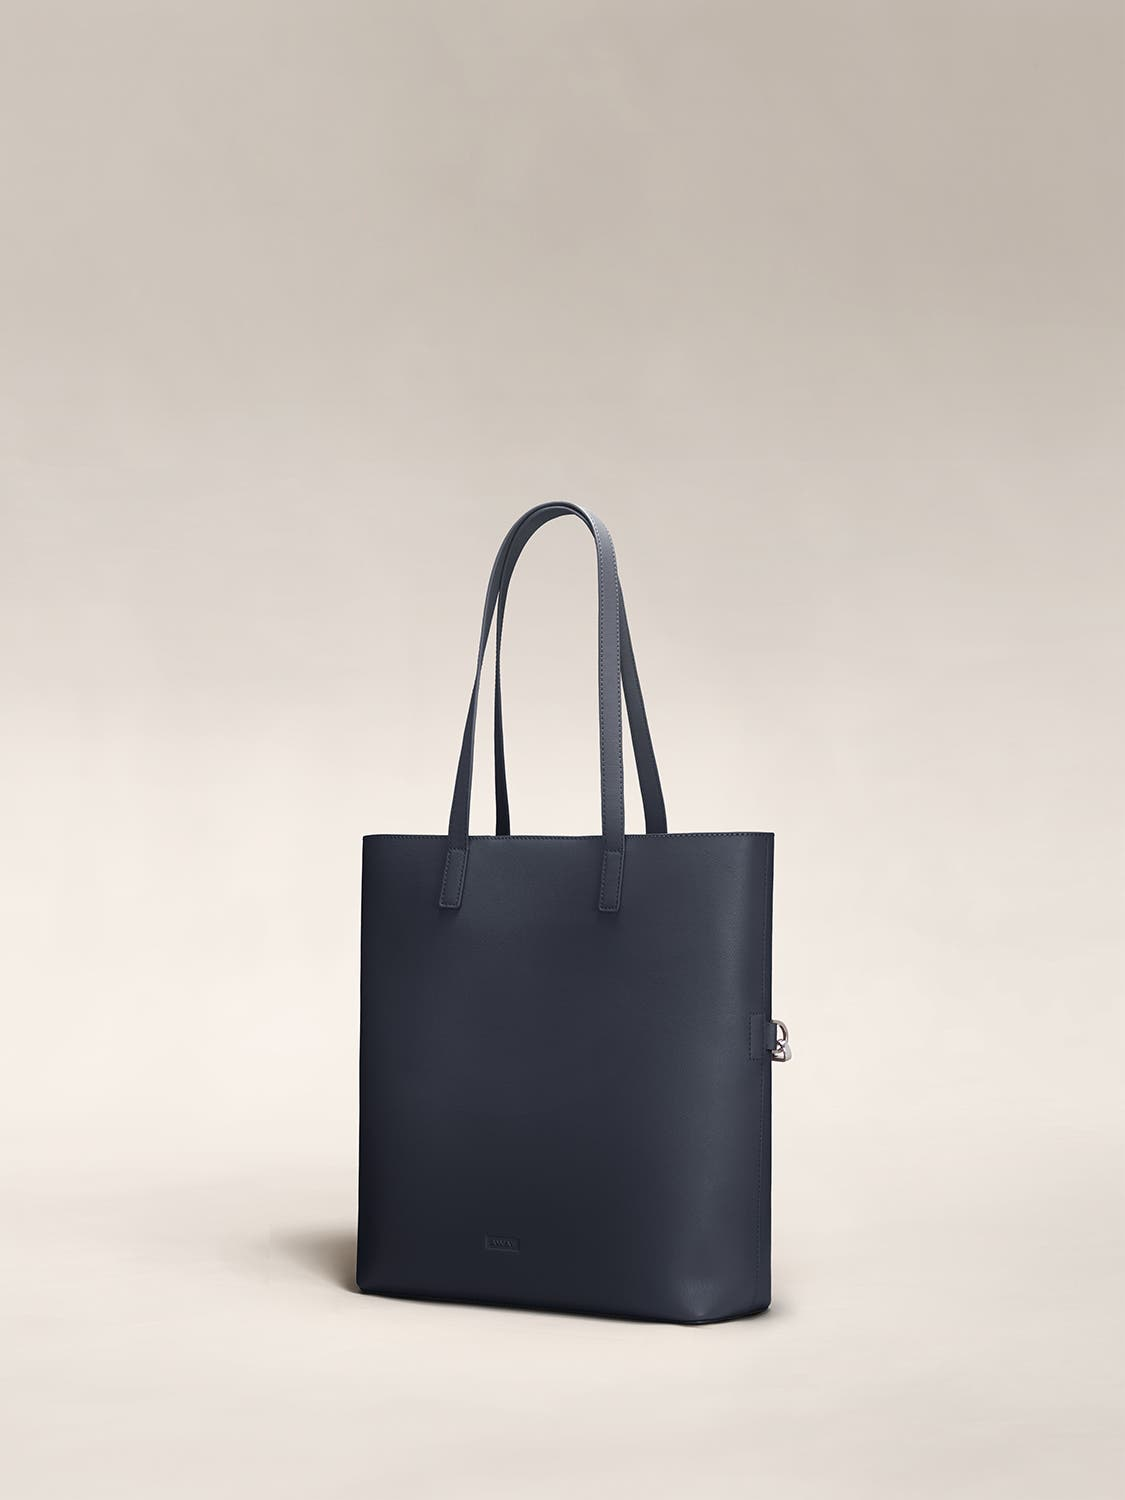 Angled view of a navy leather tote travel bag in leather.